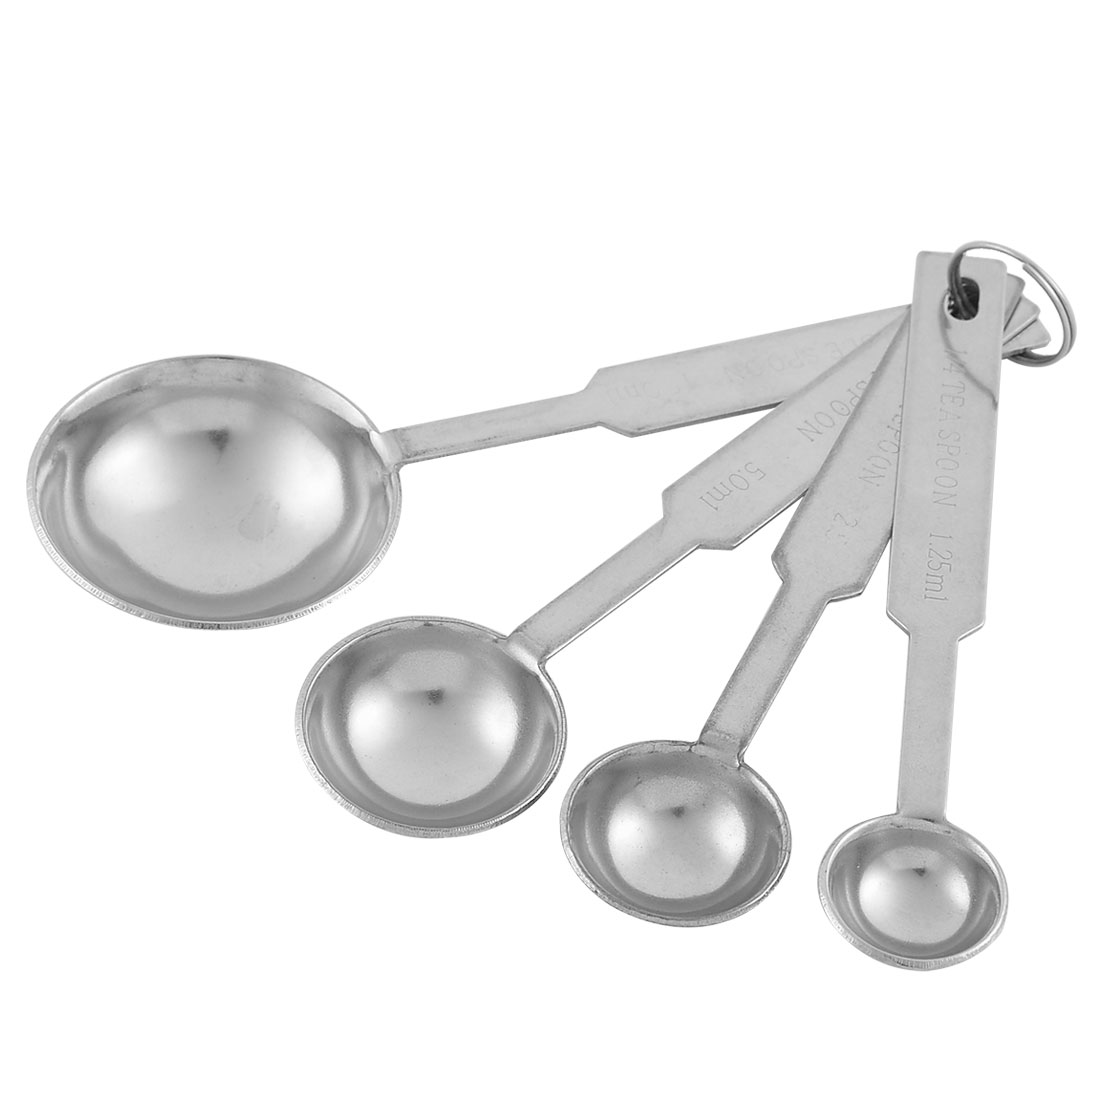 Kitchen Cooking Stainless Steel Graduated Measuring Spoon Set 4 Pcs Silver Tone